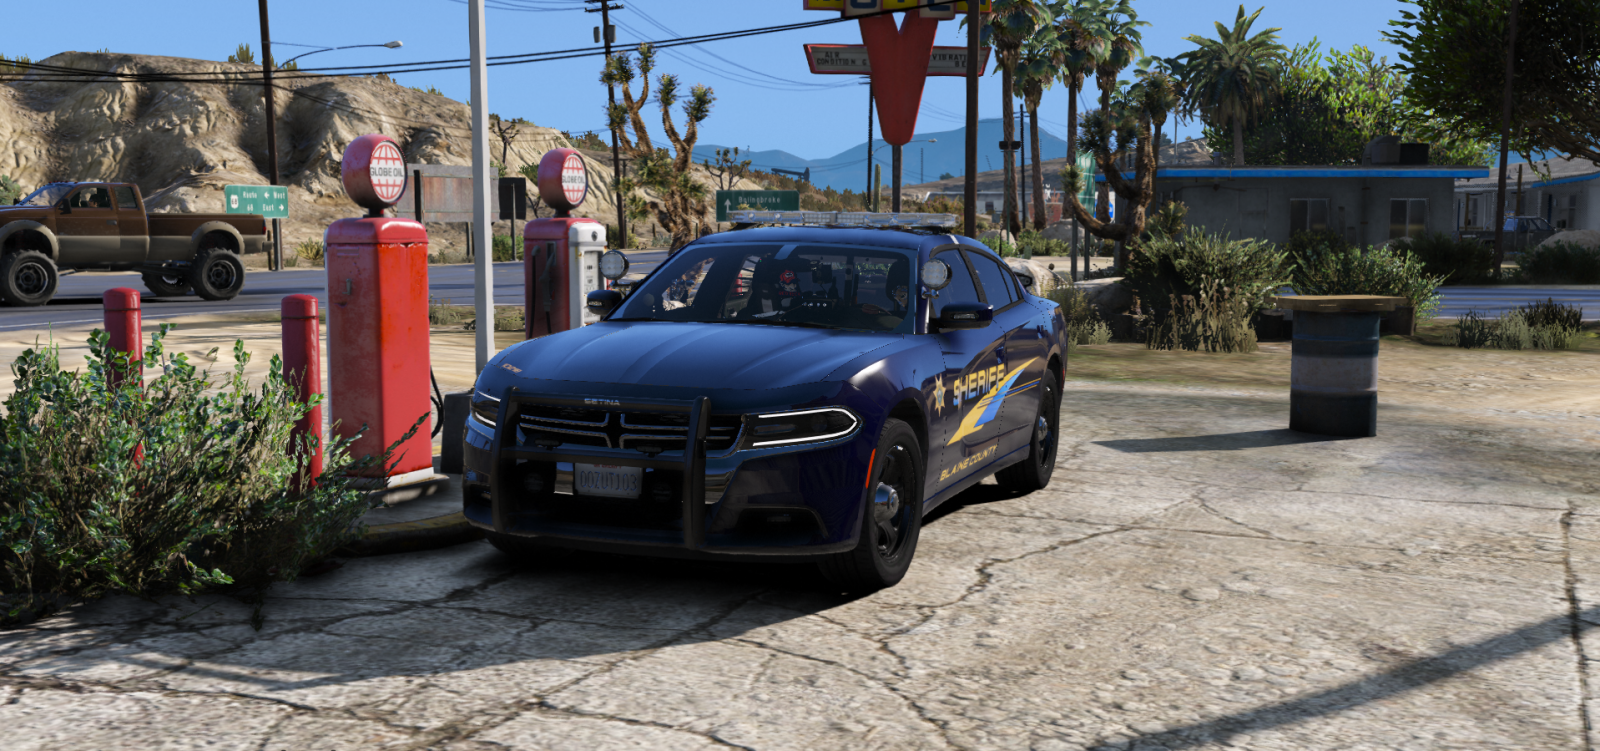 BCSO Charger